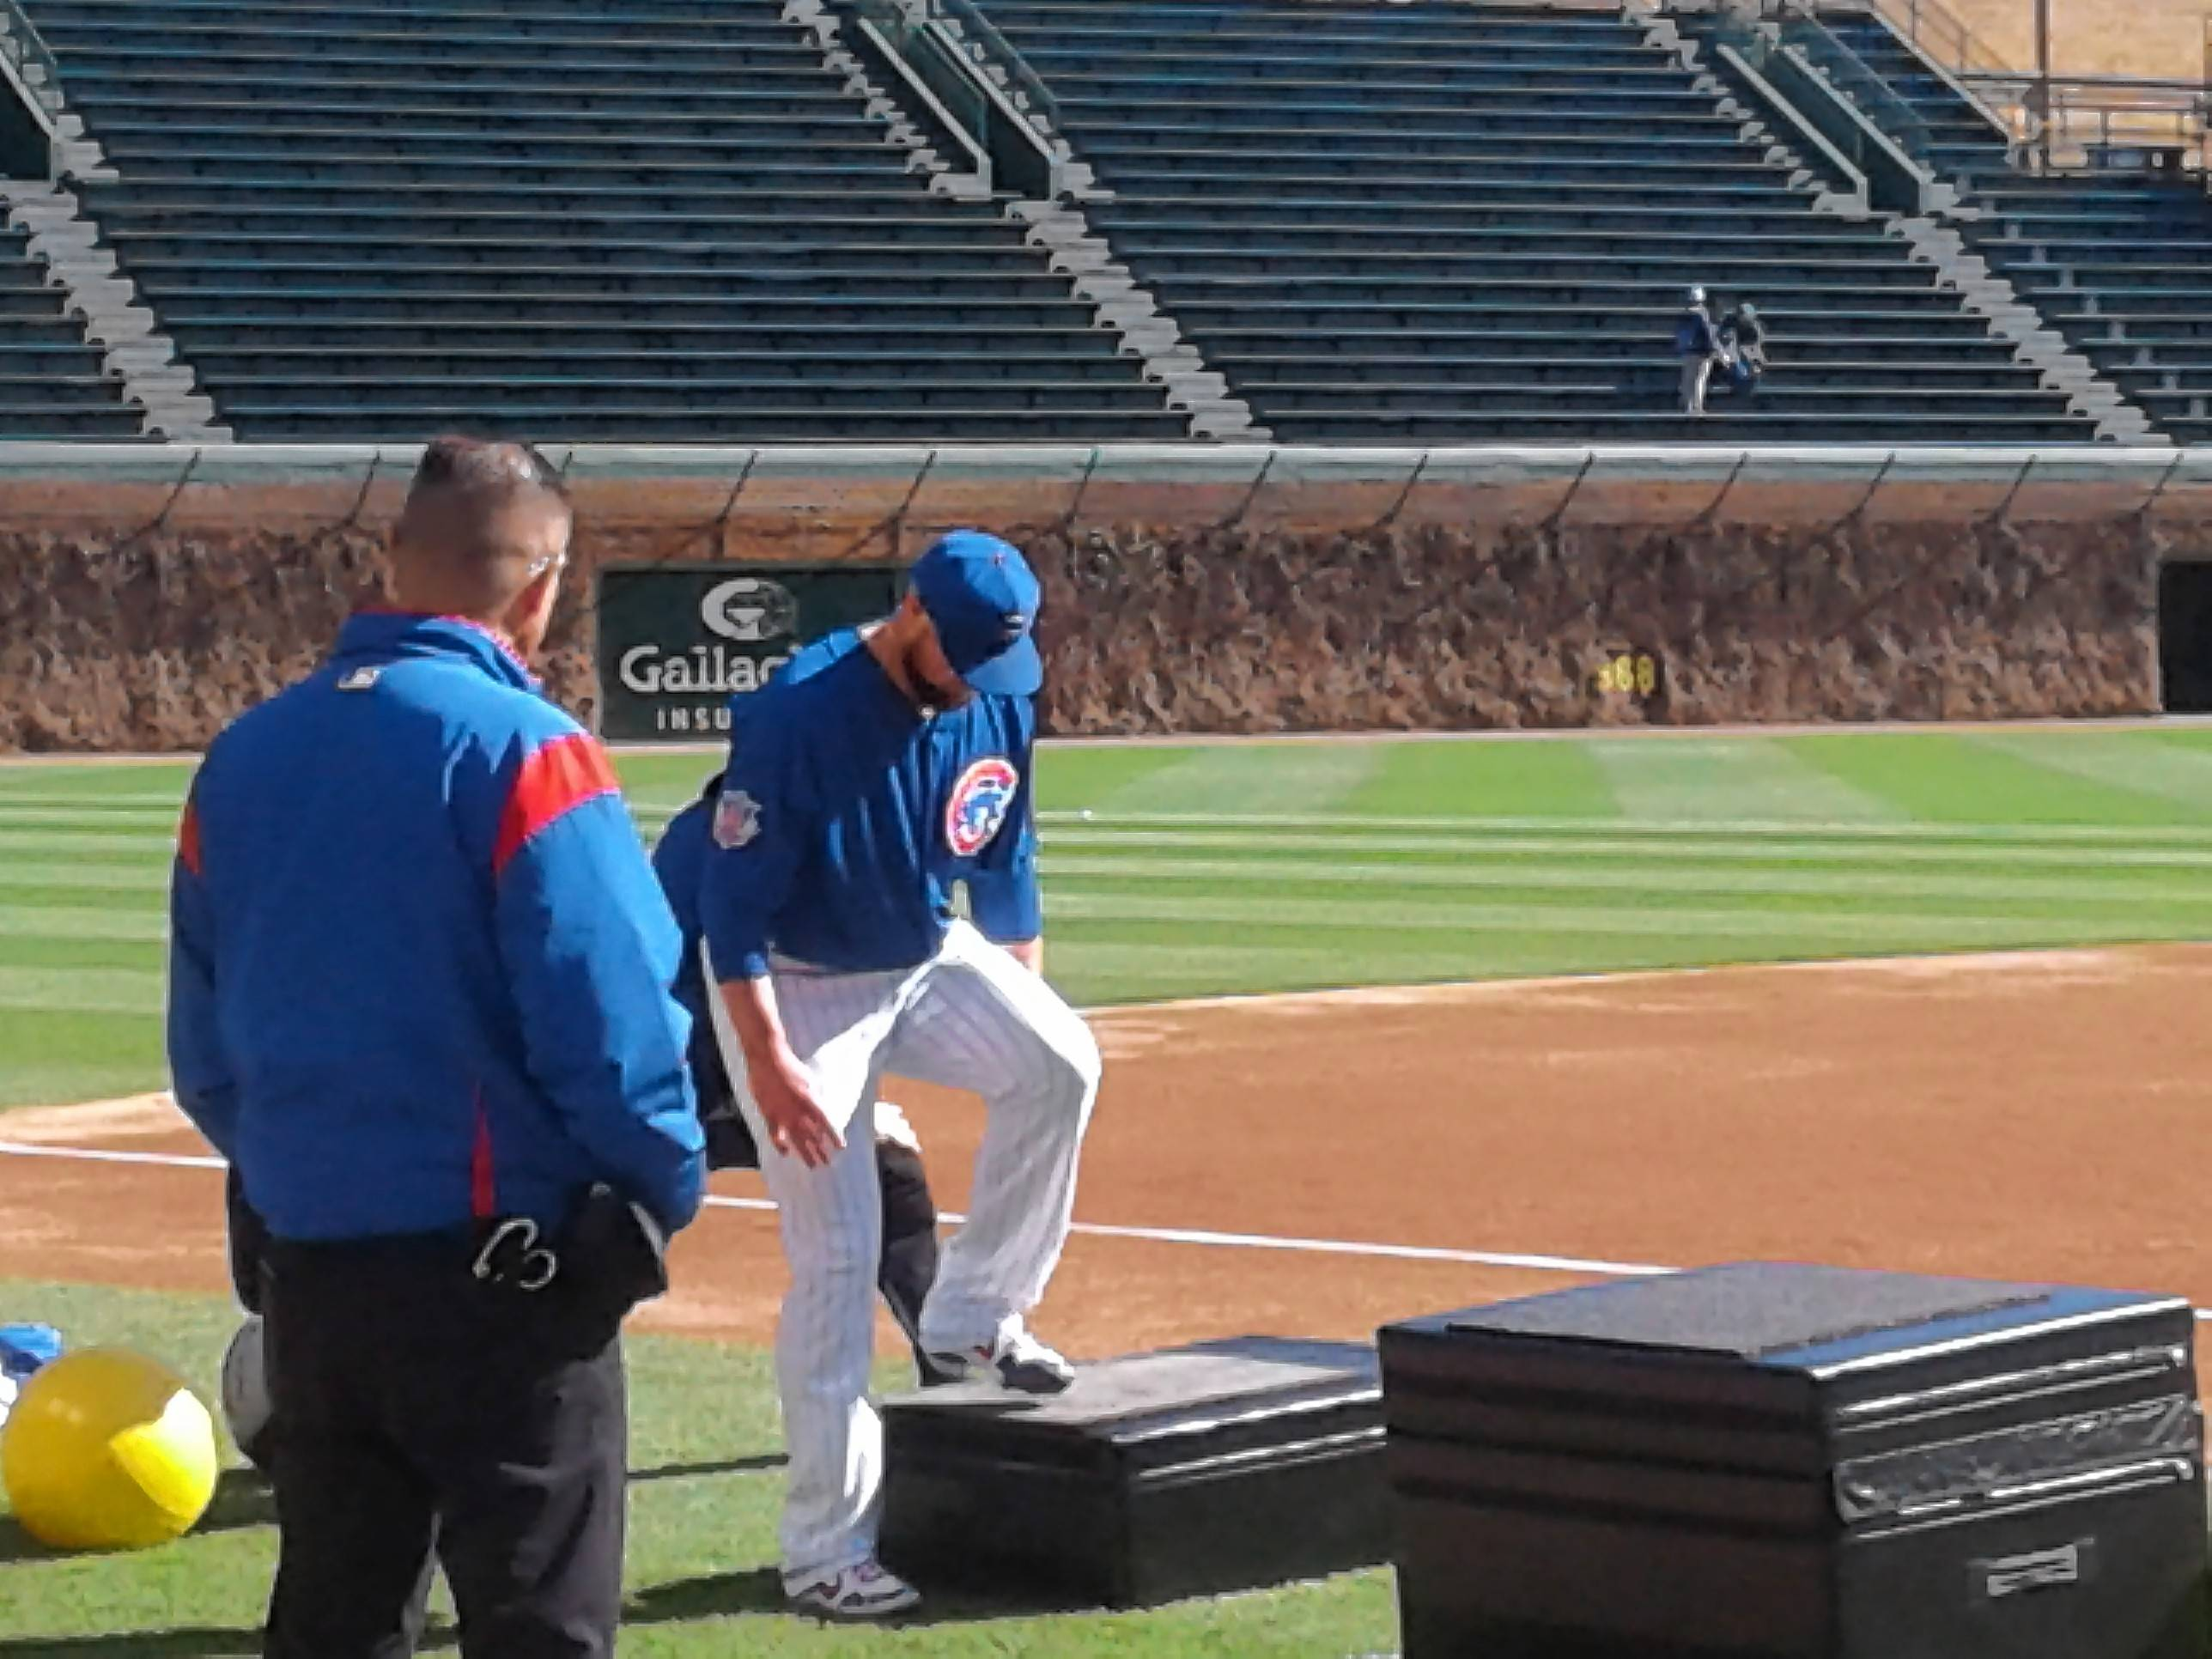 Cubs pitcher Jon Lester threw a simulated game Saturday and worked on agility drills between innings.